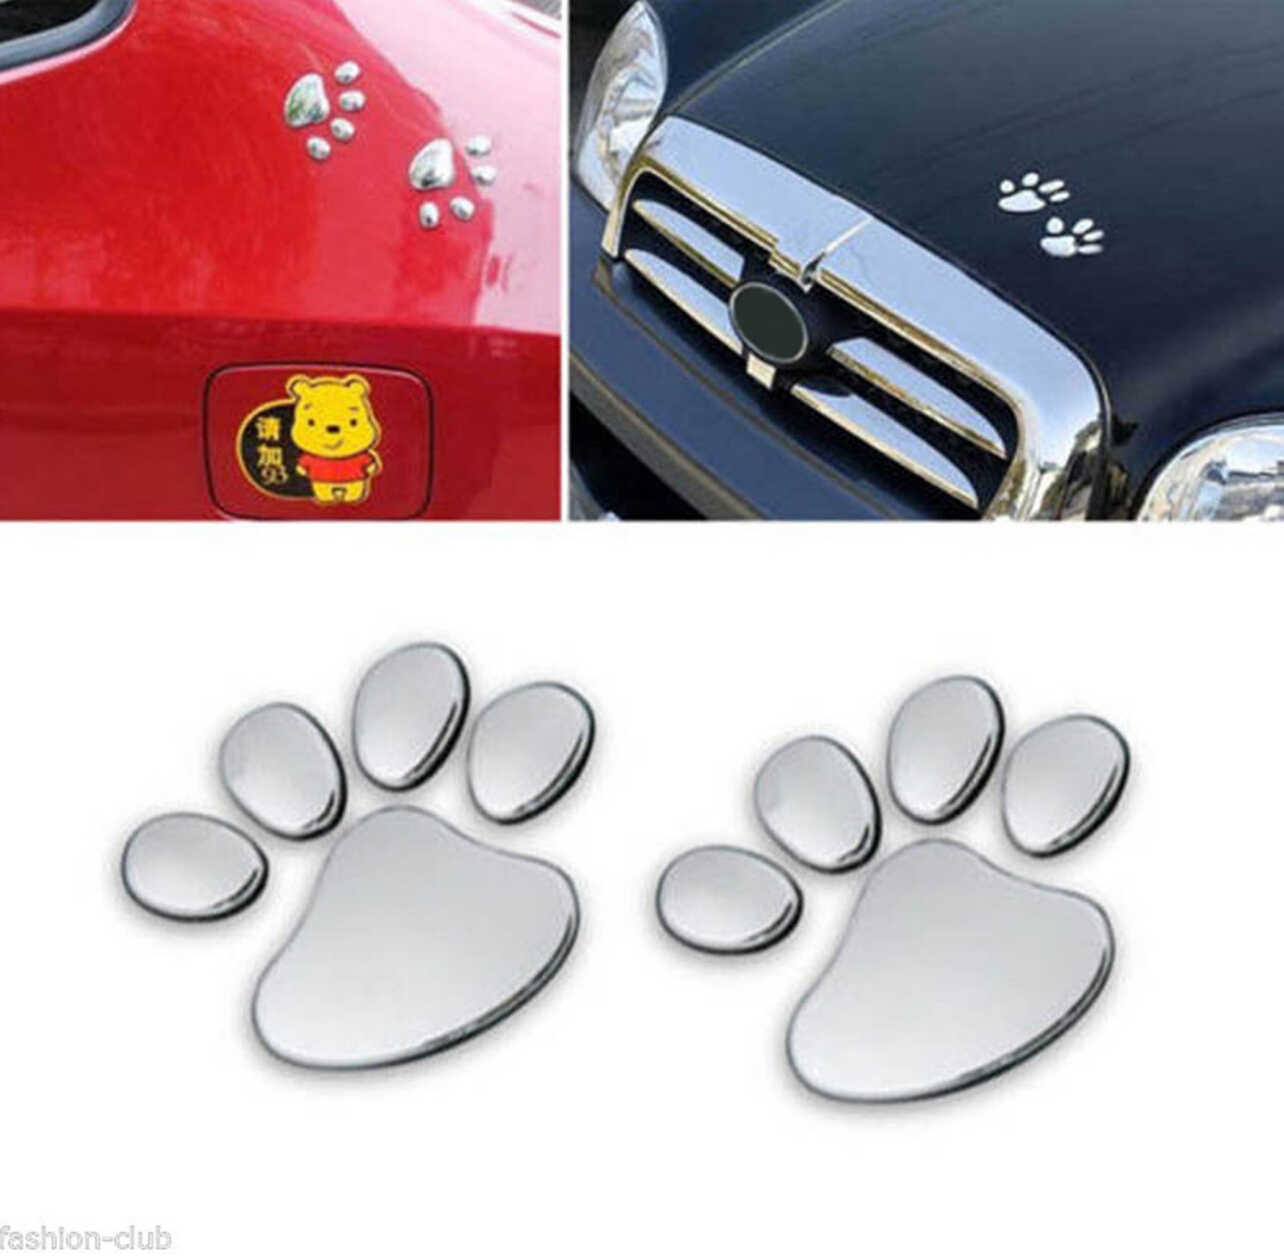 Patte Animal chien chat ours pied autocollant pour honda vfr 800 bmw m per formance citroën c4 vw touran golf mk2 mini cooper r53